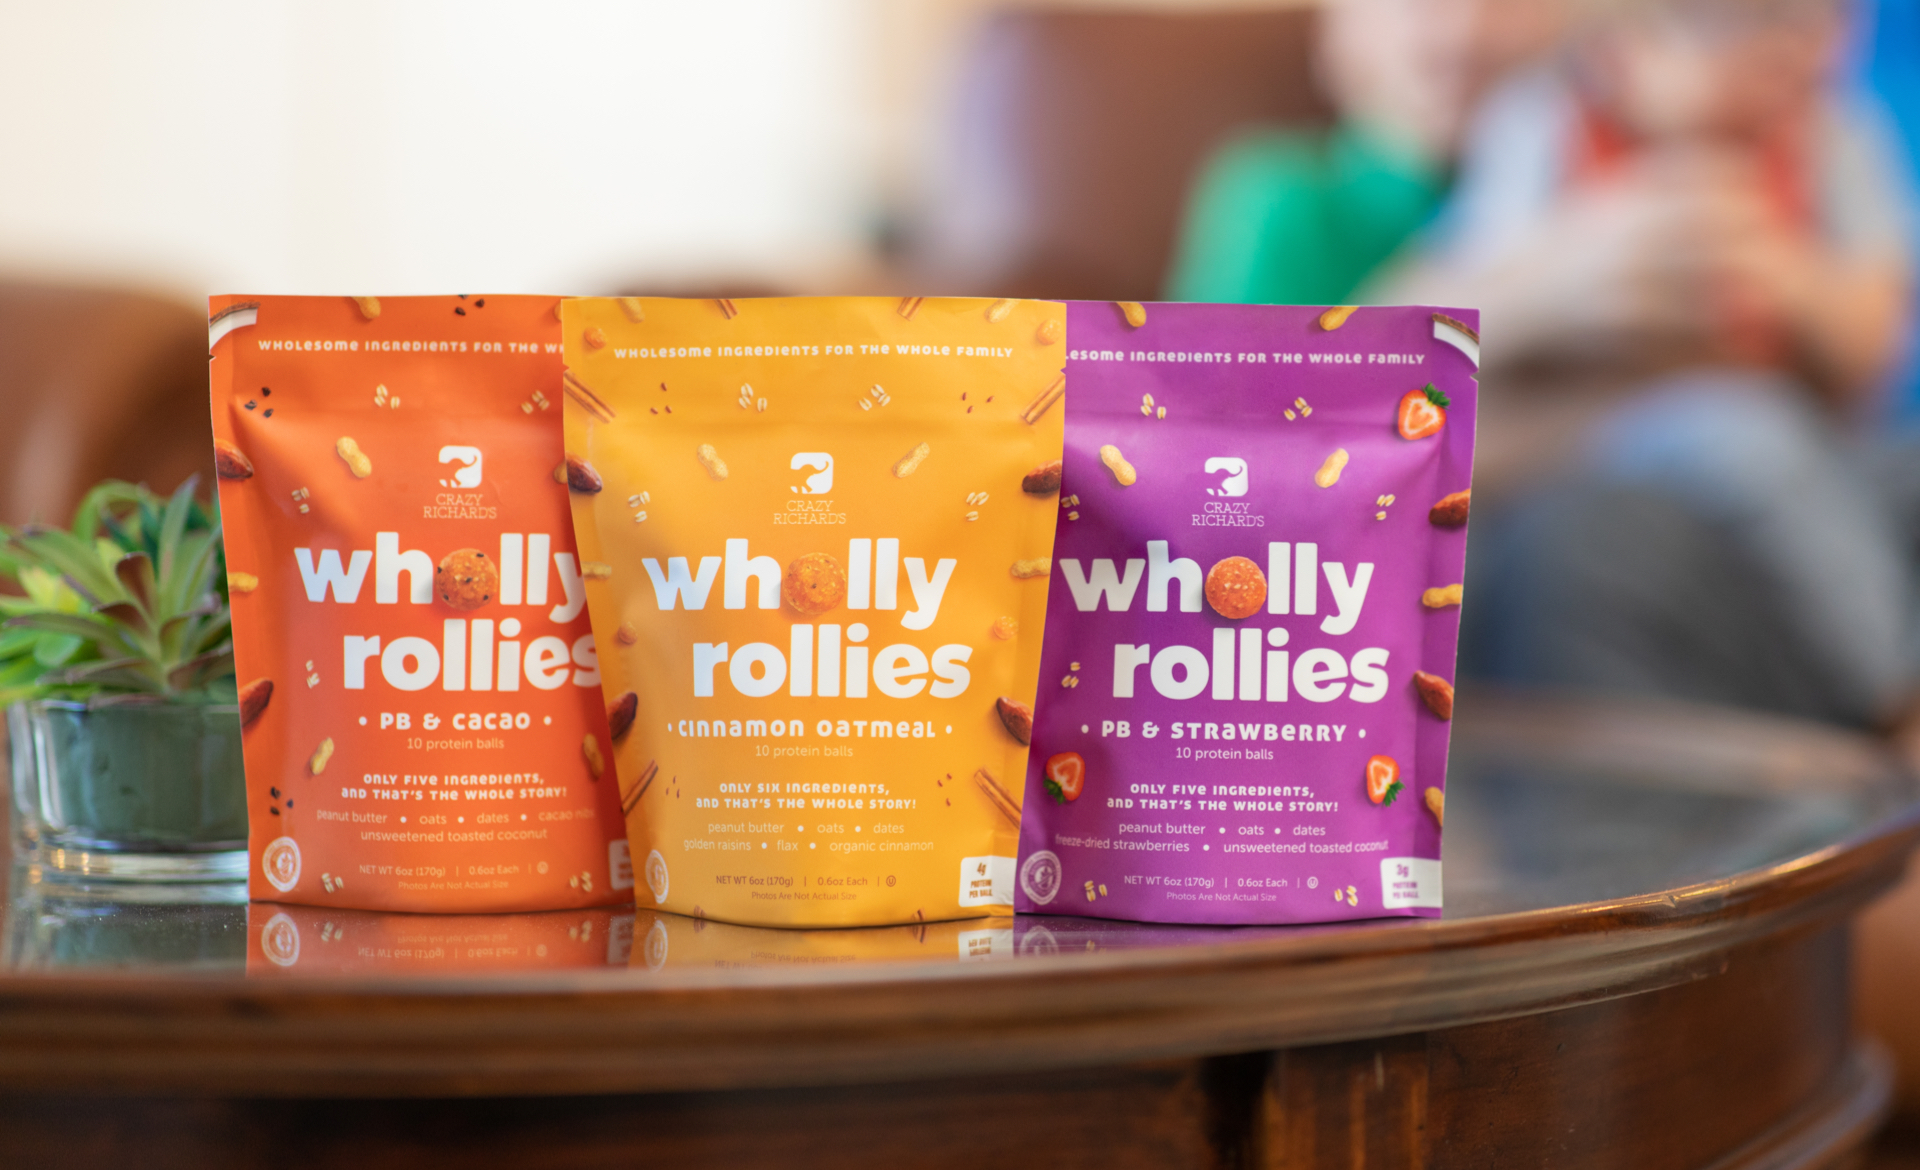 Wholly Rollies packaging on a glass coffee table